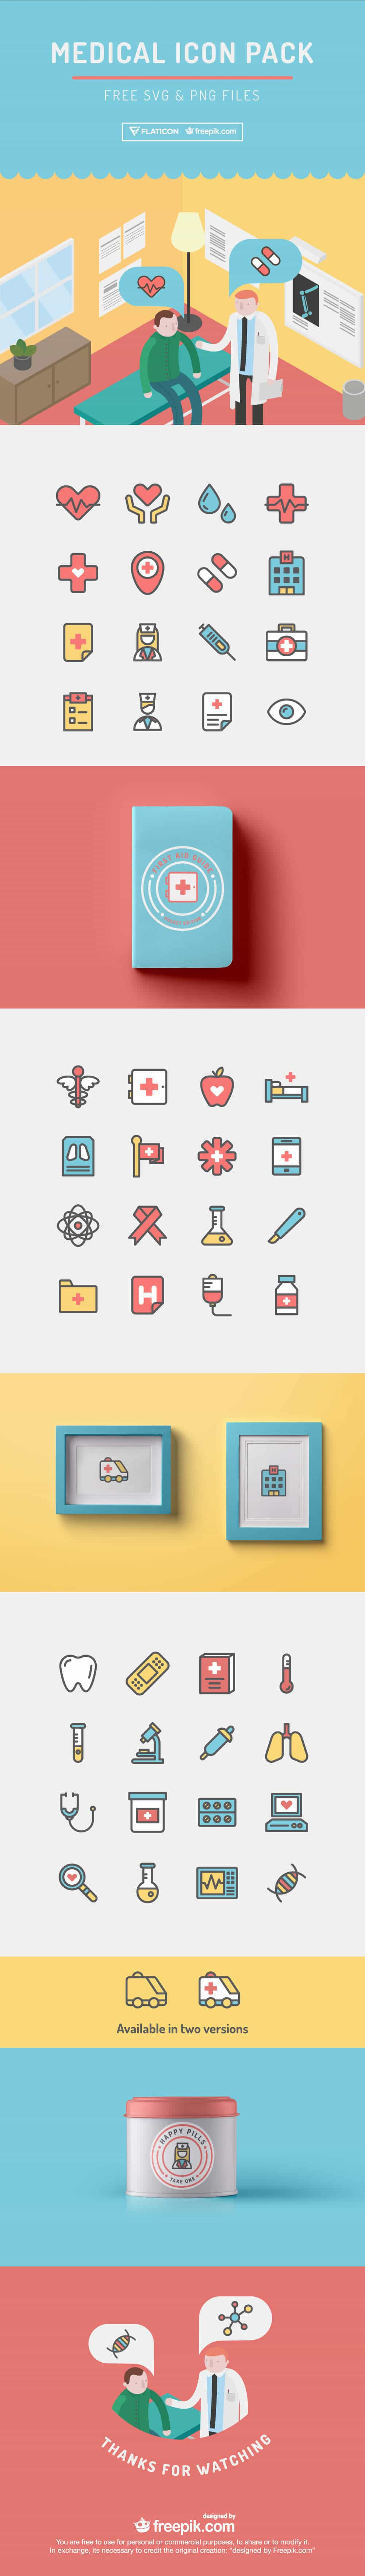 medical-icons-freepik